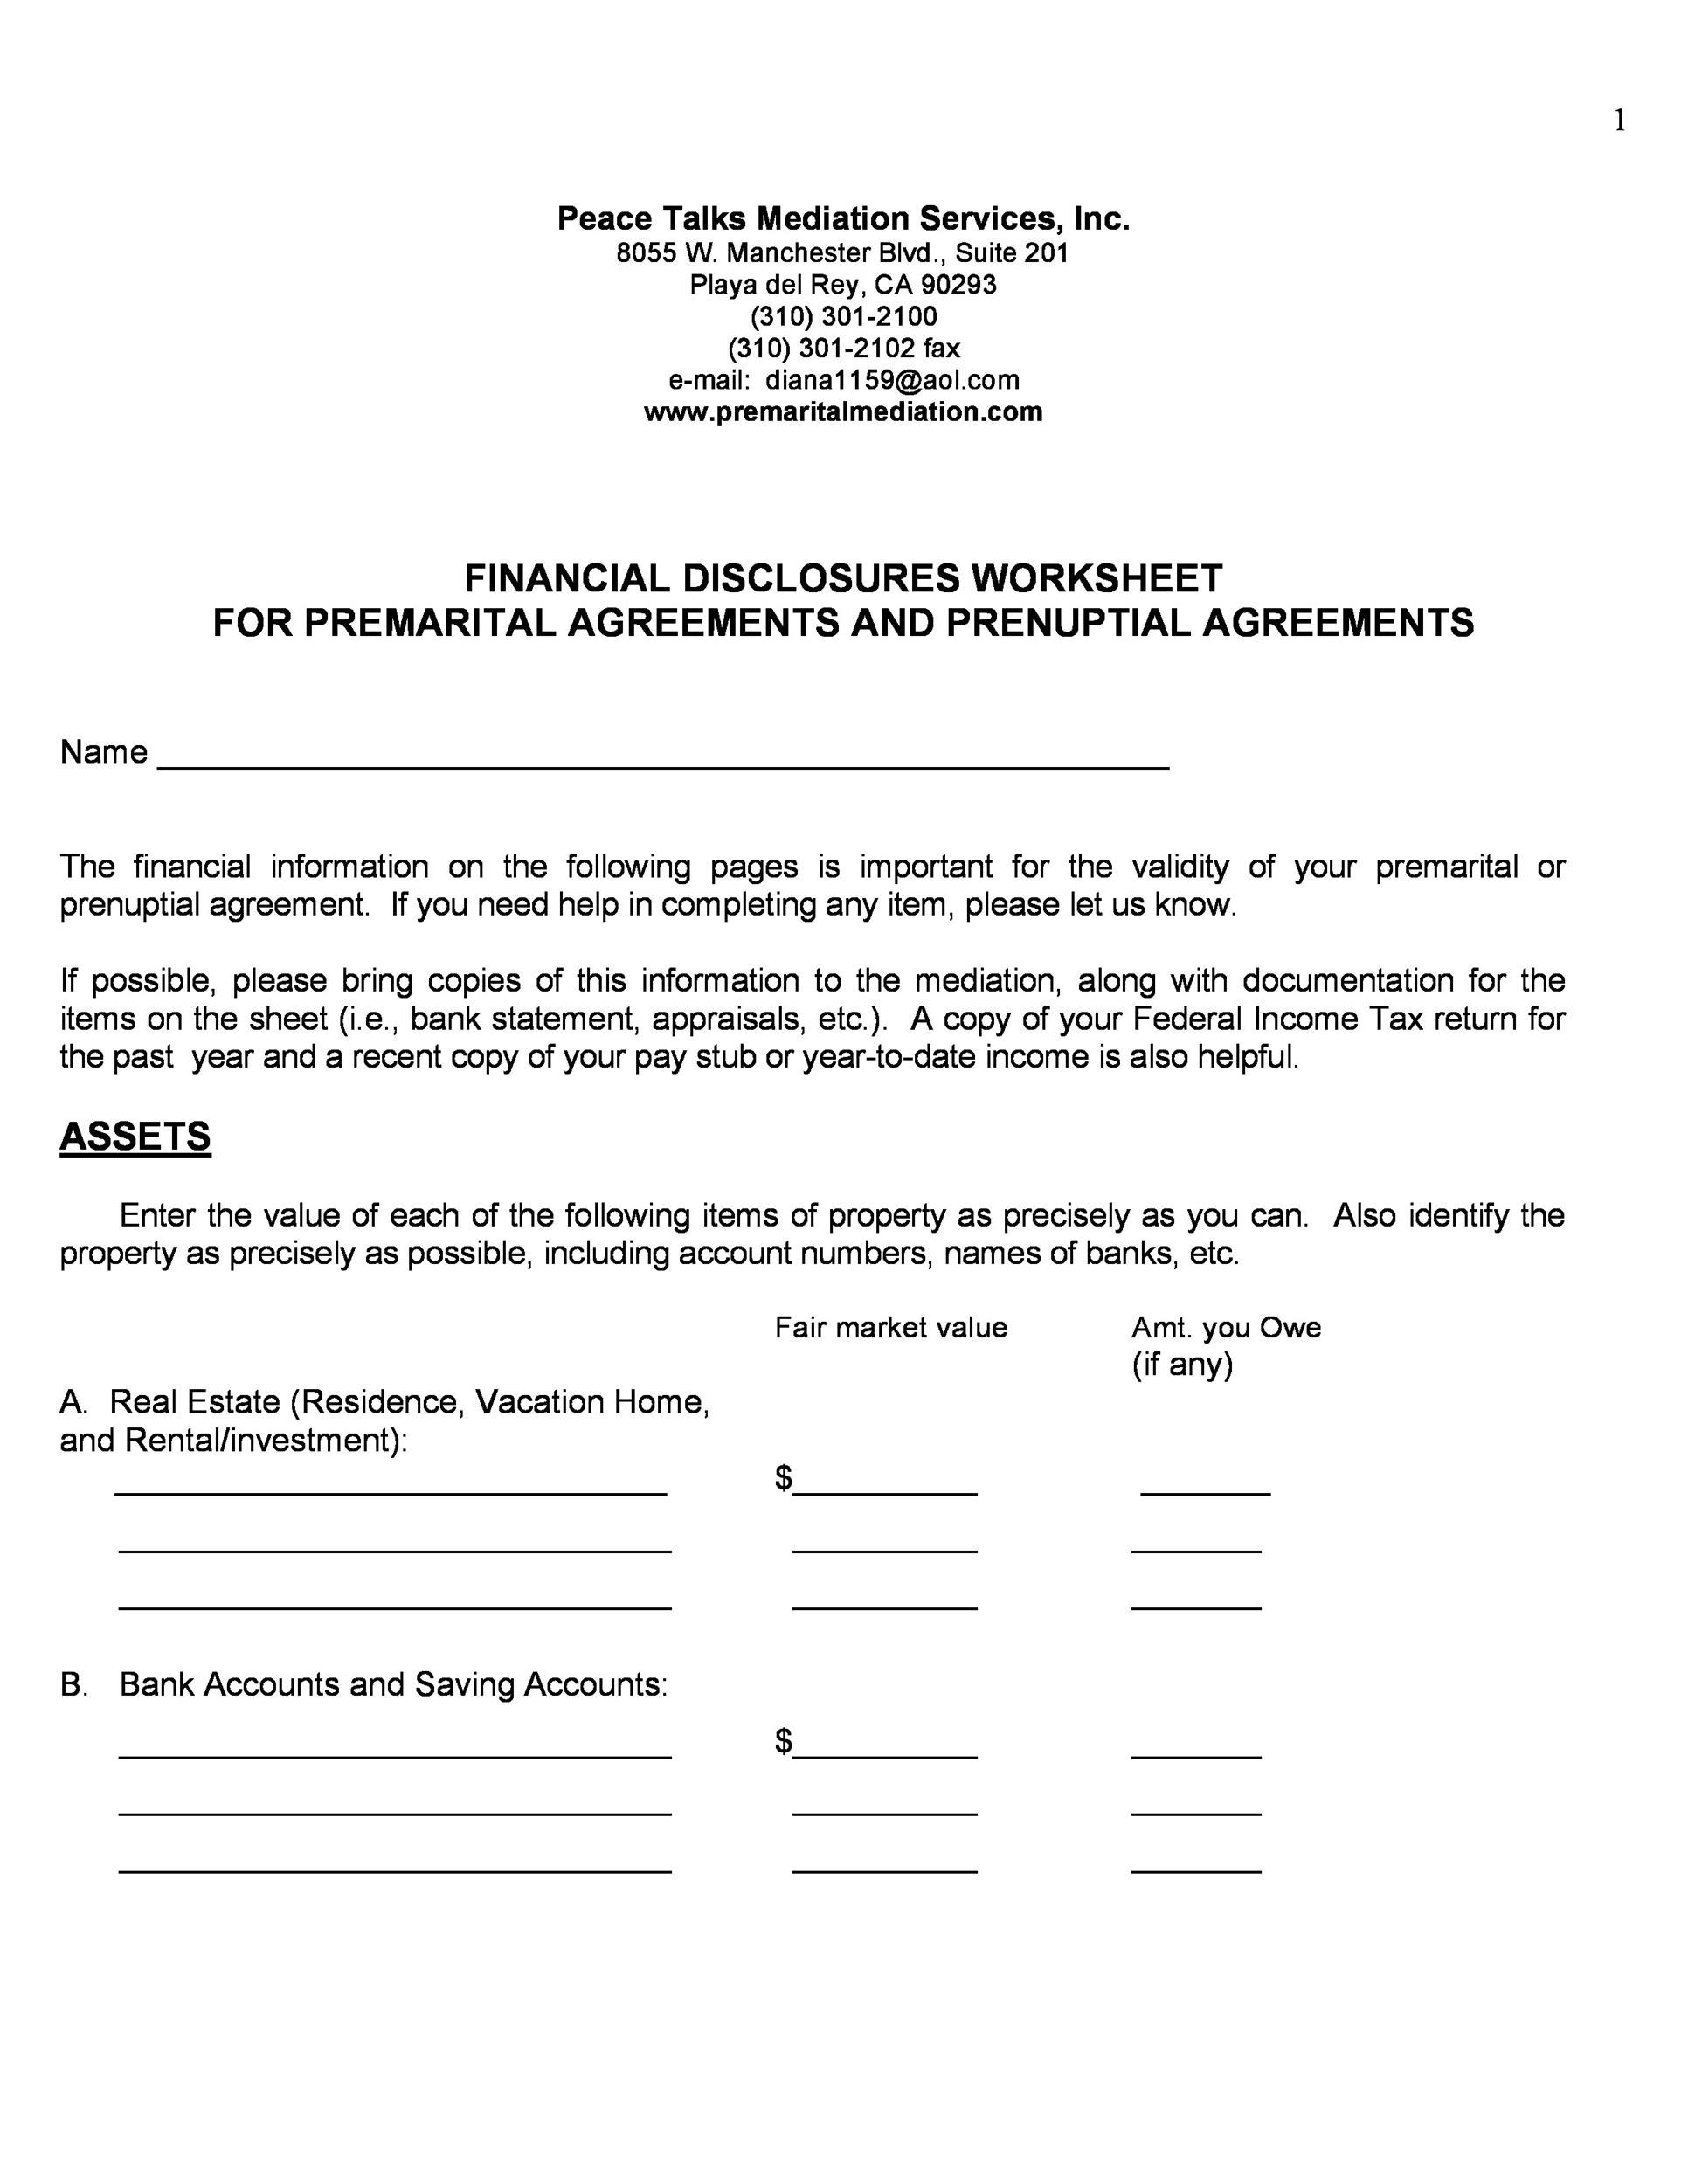 30+ Prenuptial Agreement Samples & Forms - Template Lab